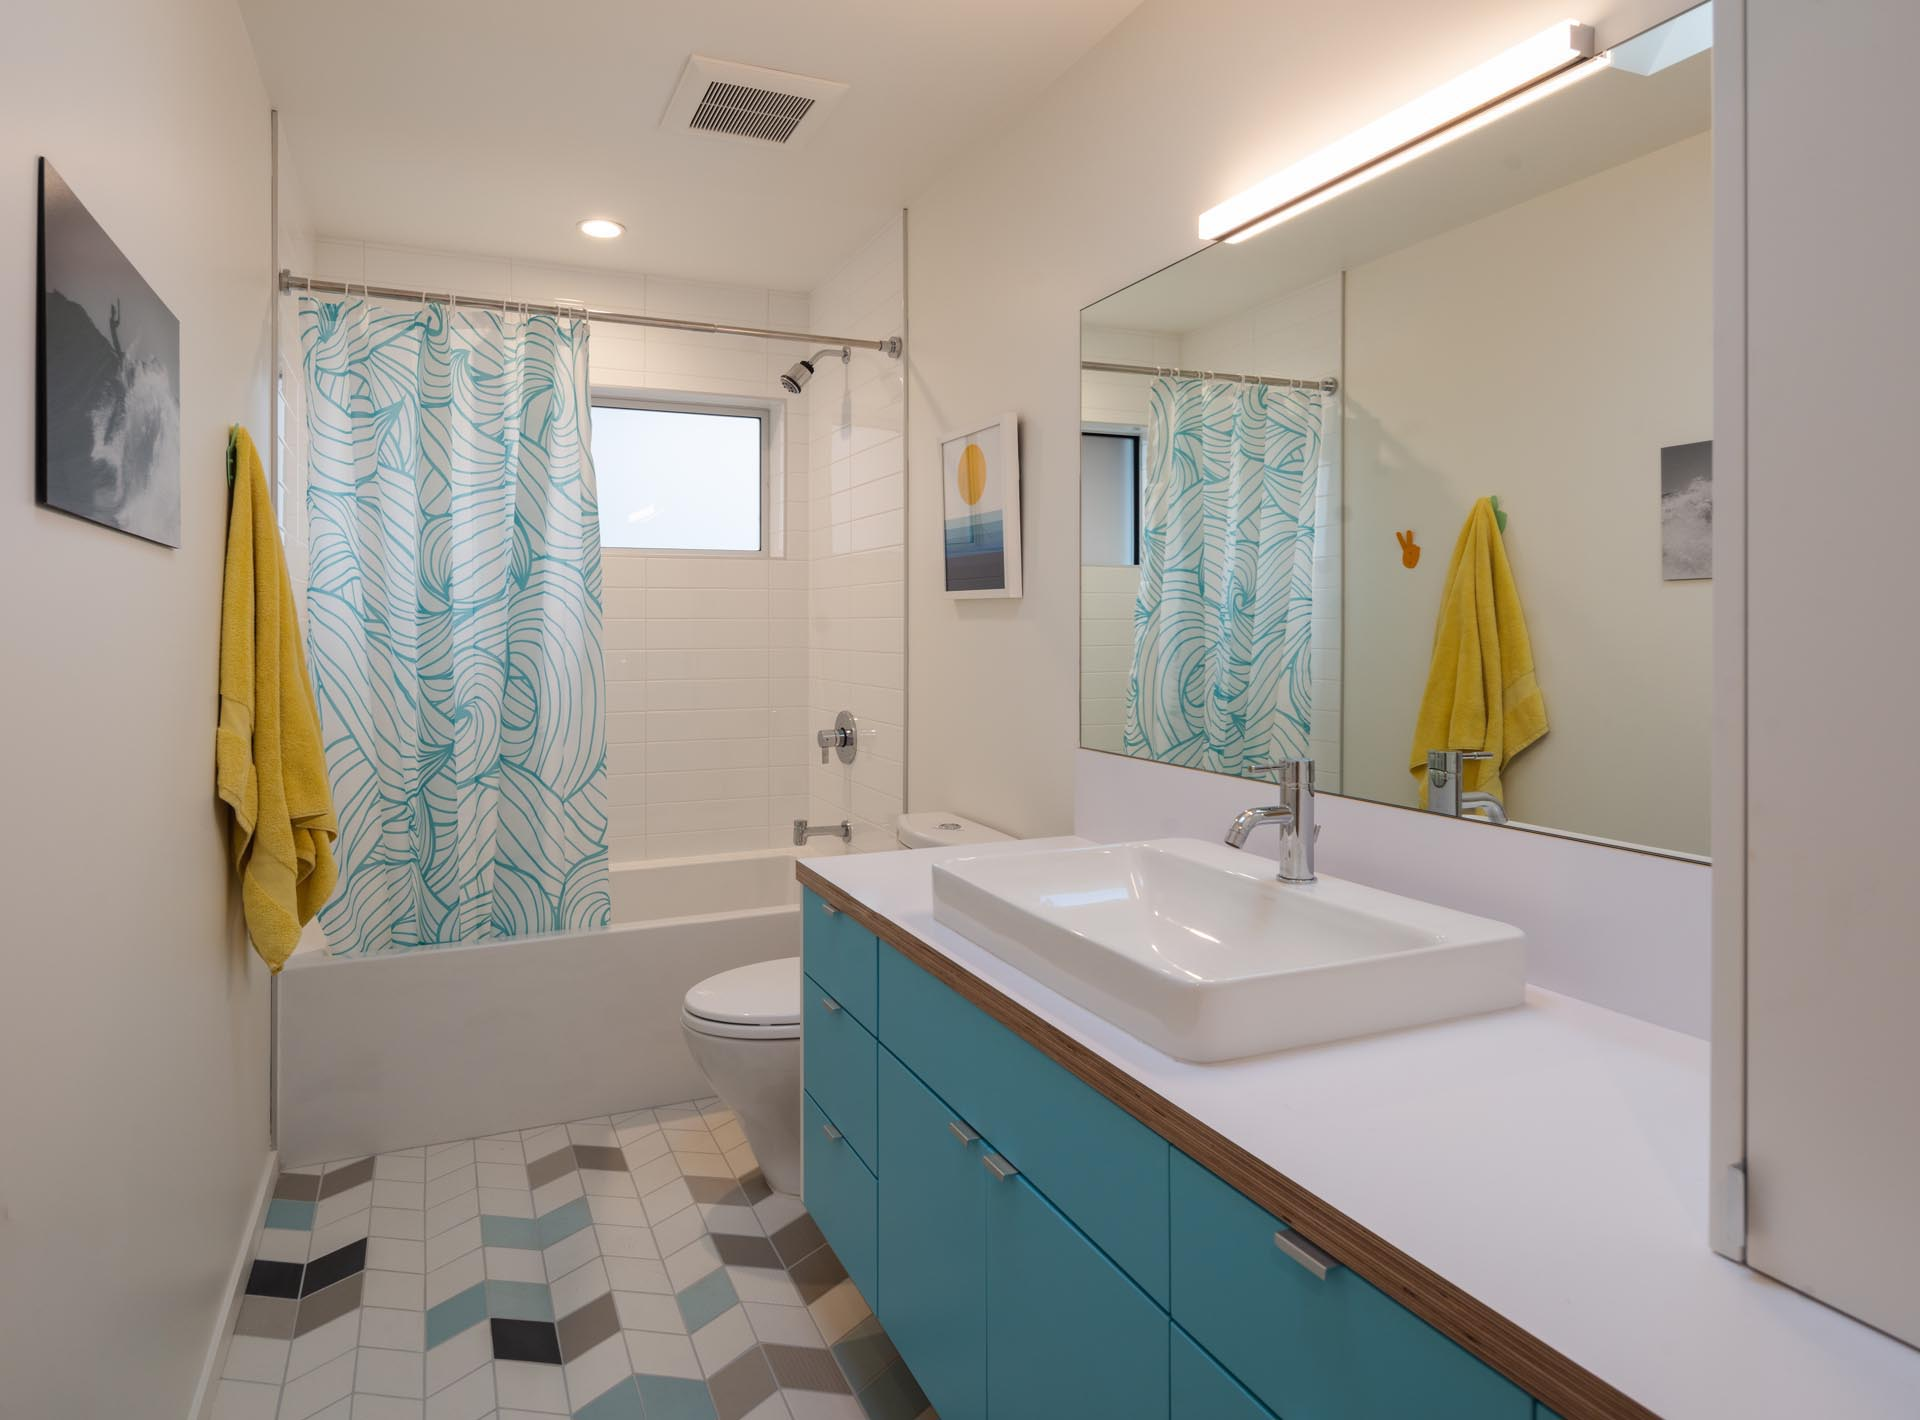 In this bathroom, a bright blue vanity is topped with a white countertop, while the chevron floor tiles feature a few different colors adding interest to the room.